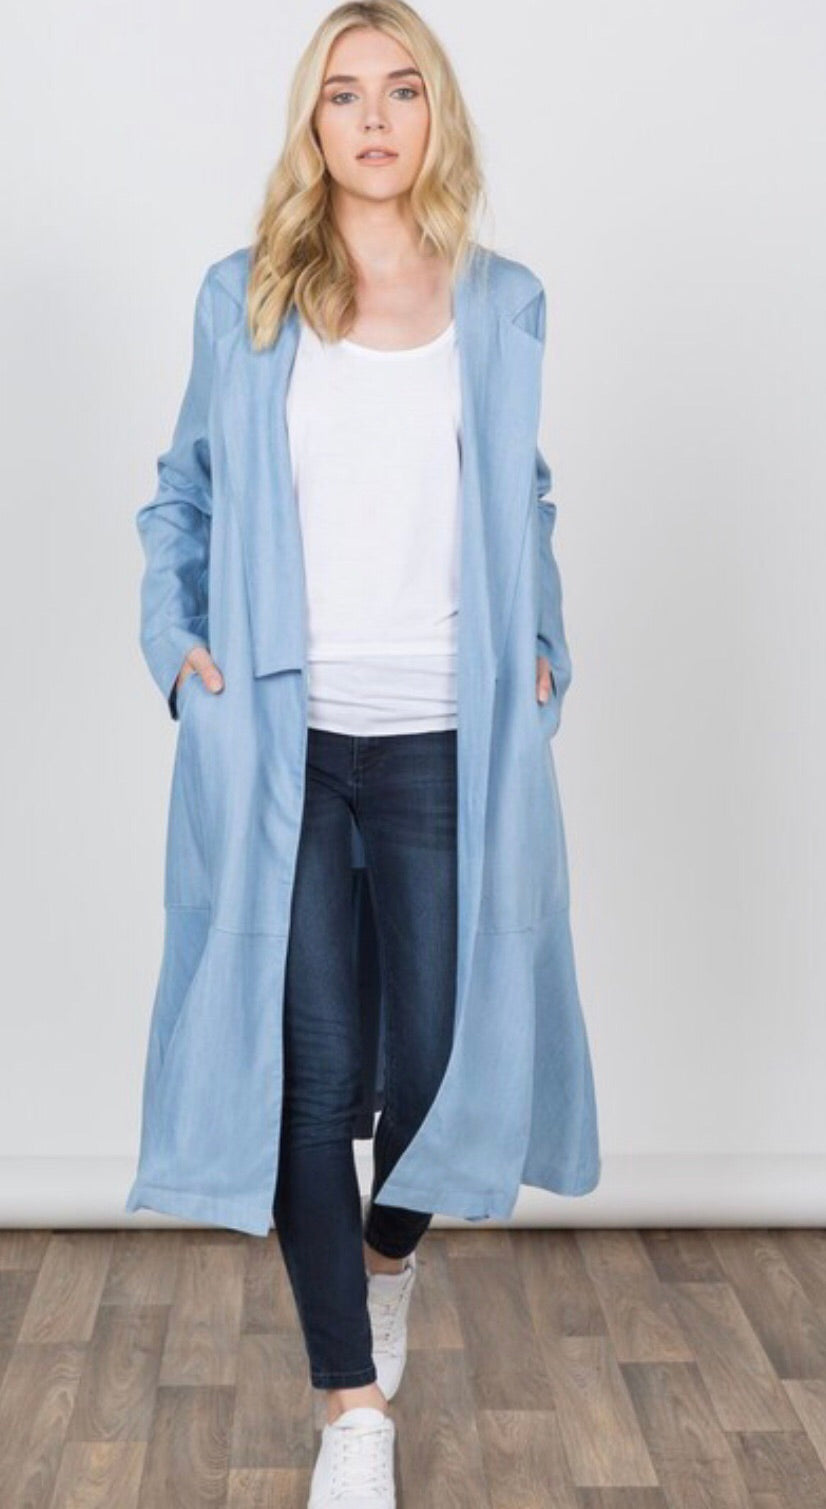 Women's light blue duster length jacket with pockets front.